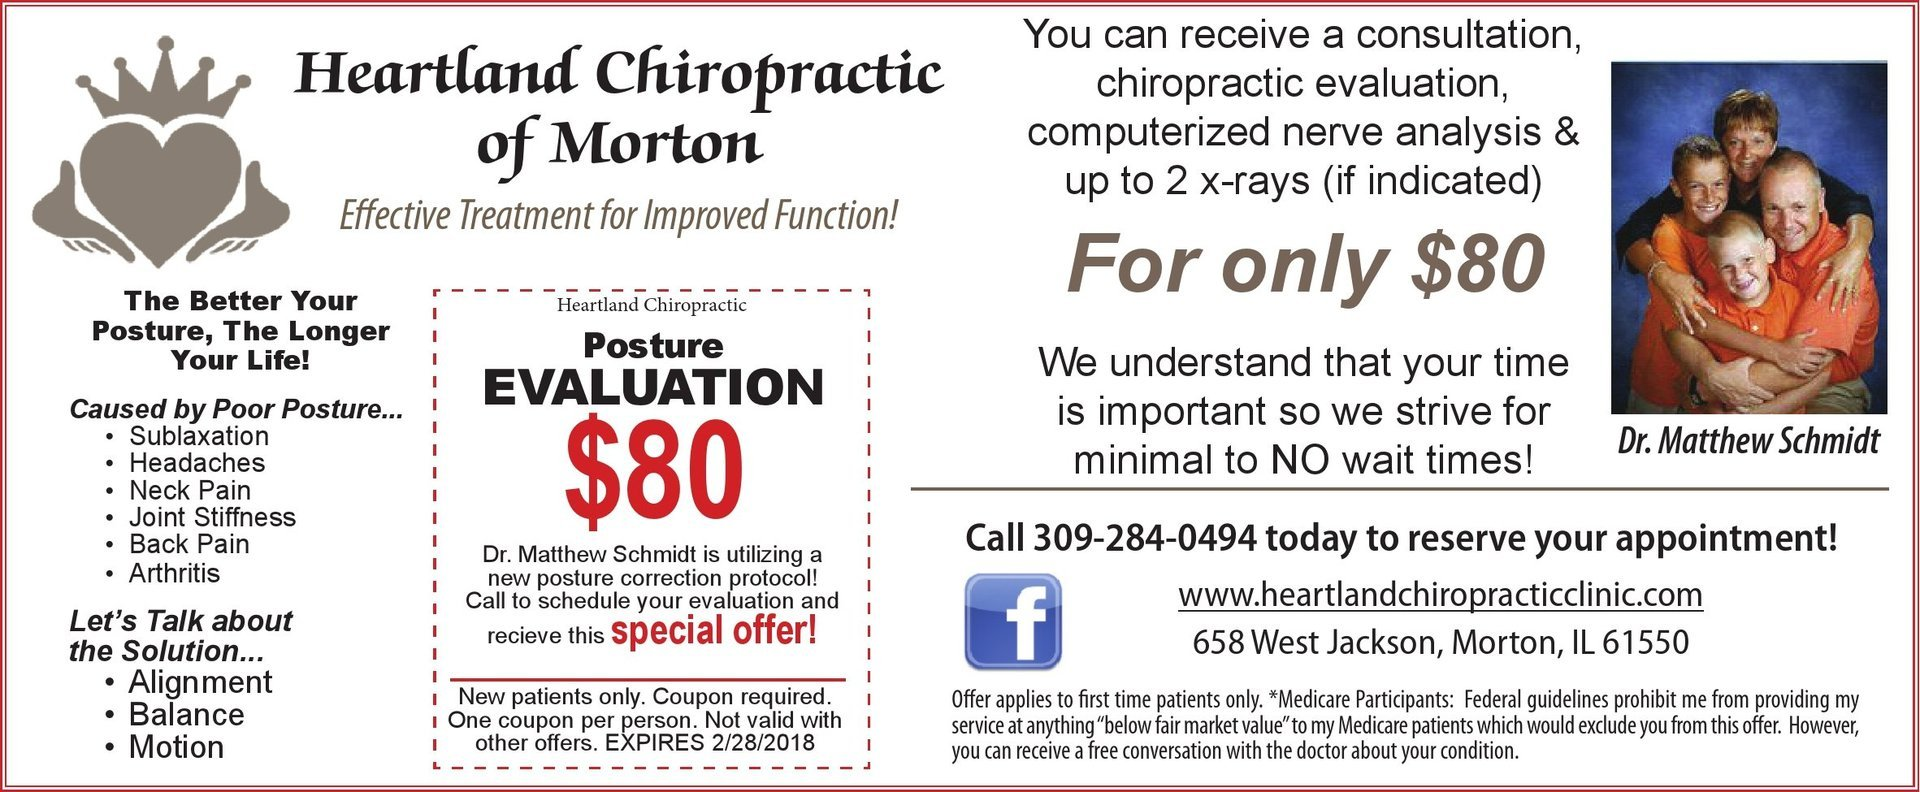 Heartland Chiropractic of Morton posture and consultation coupons Morton, IL